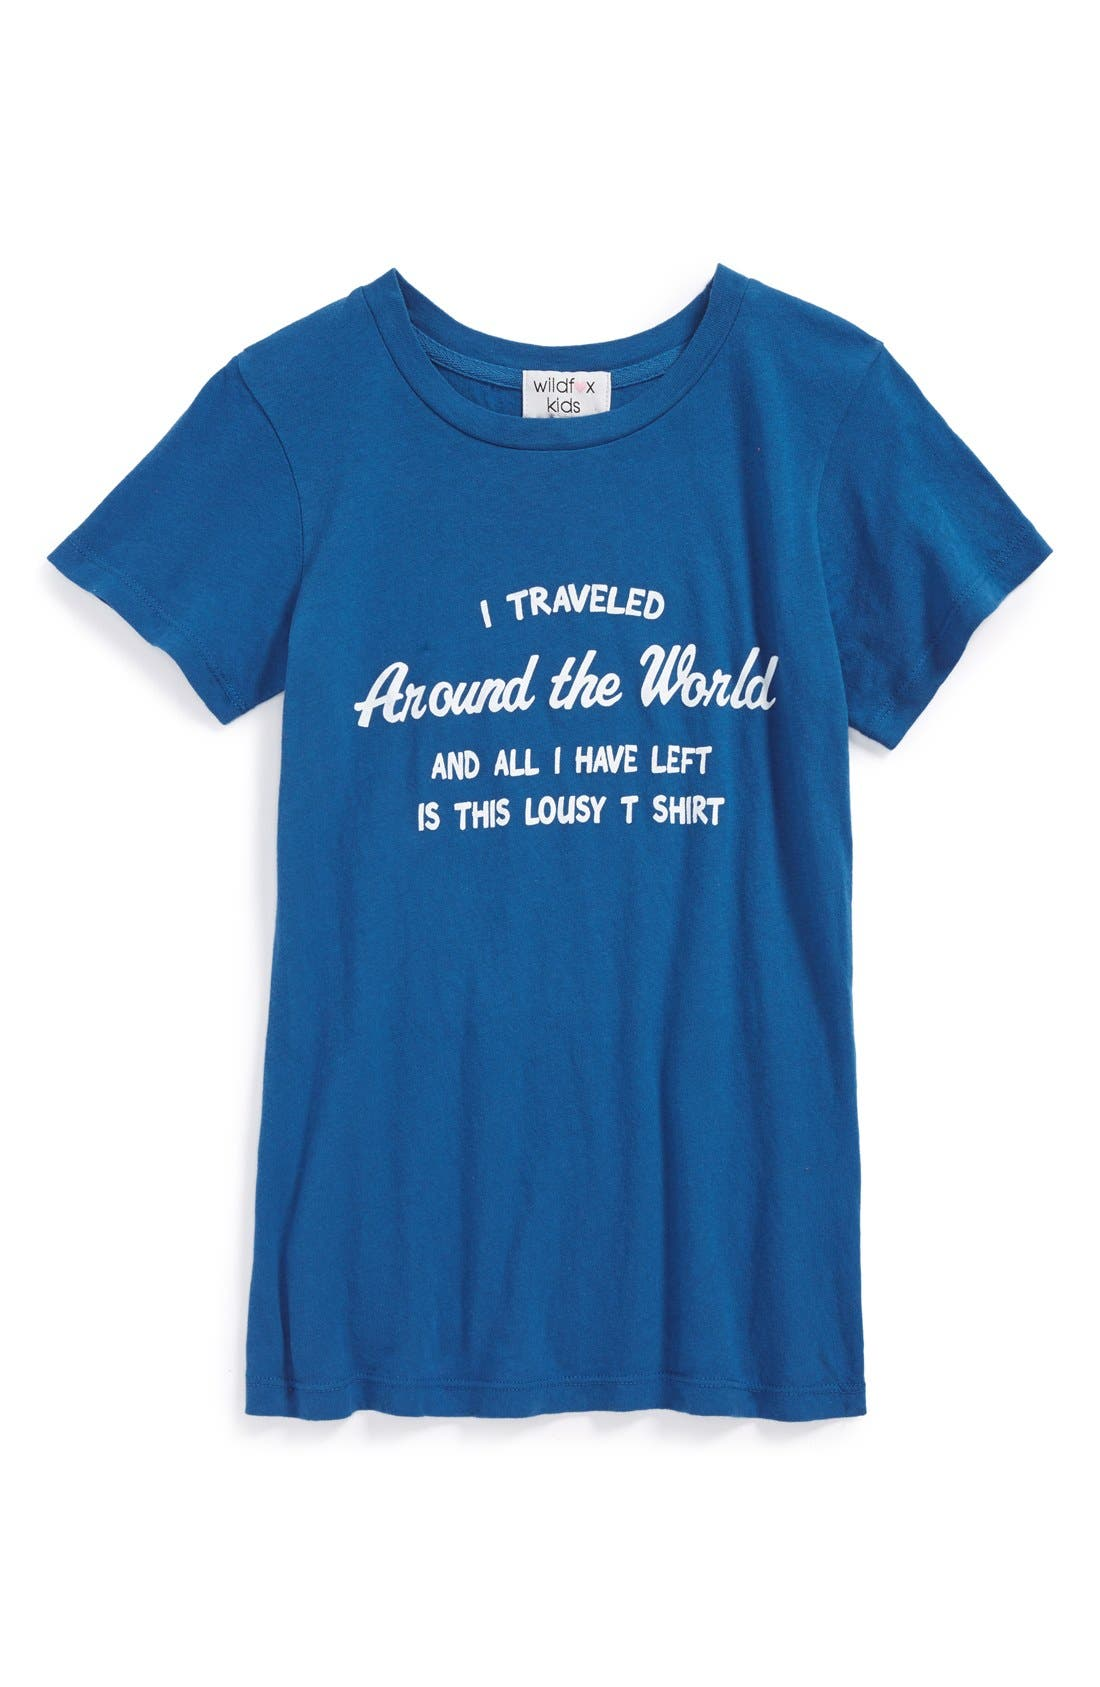 Alternate Image 1 Selected - Wildfox 'Around the World' Graphic Cotton Tee (Big Girls)